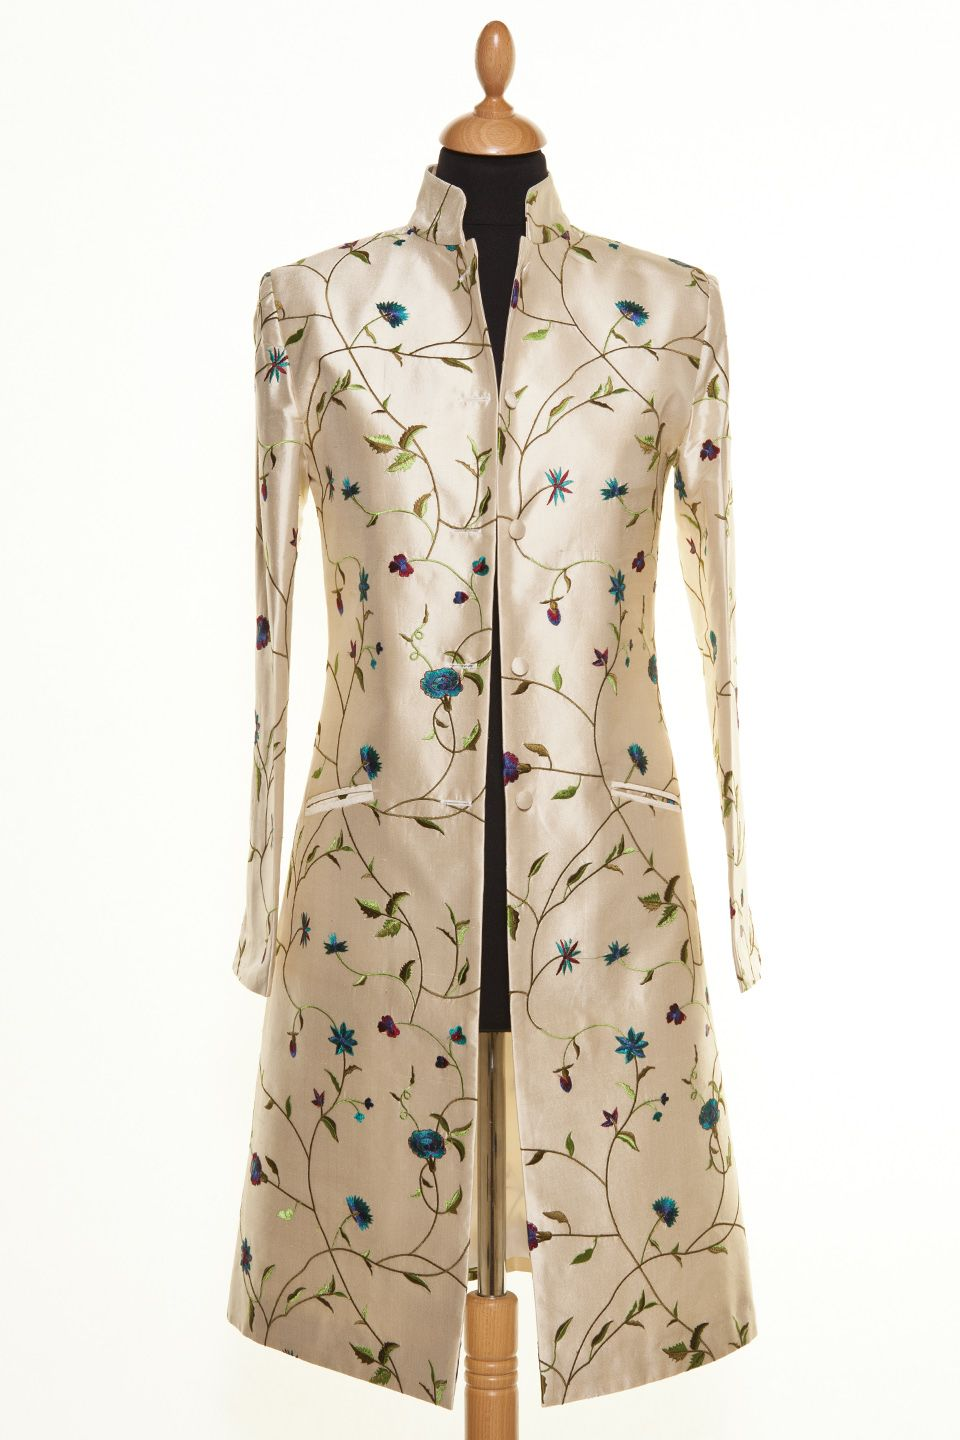 Womens Silk and Cashmere Coats, Jackets, Wedding Wear | Shibumi